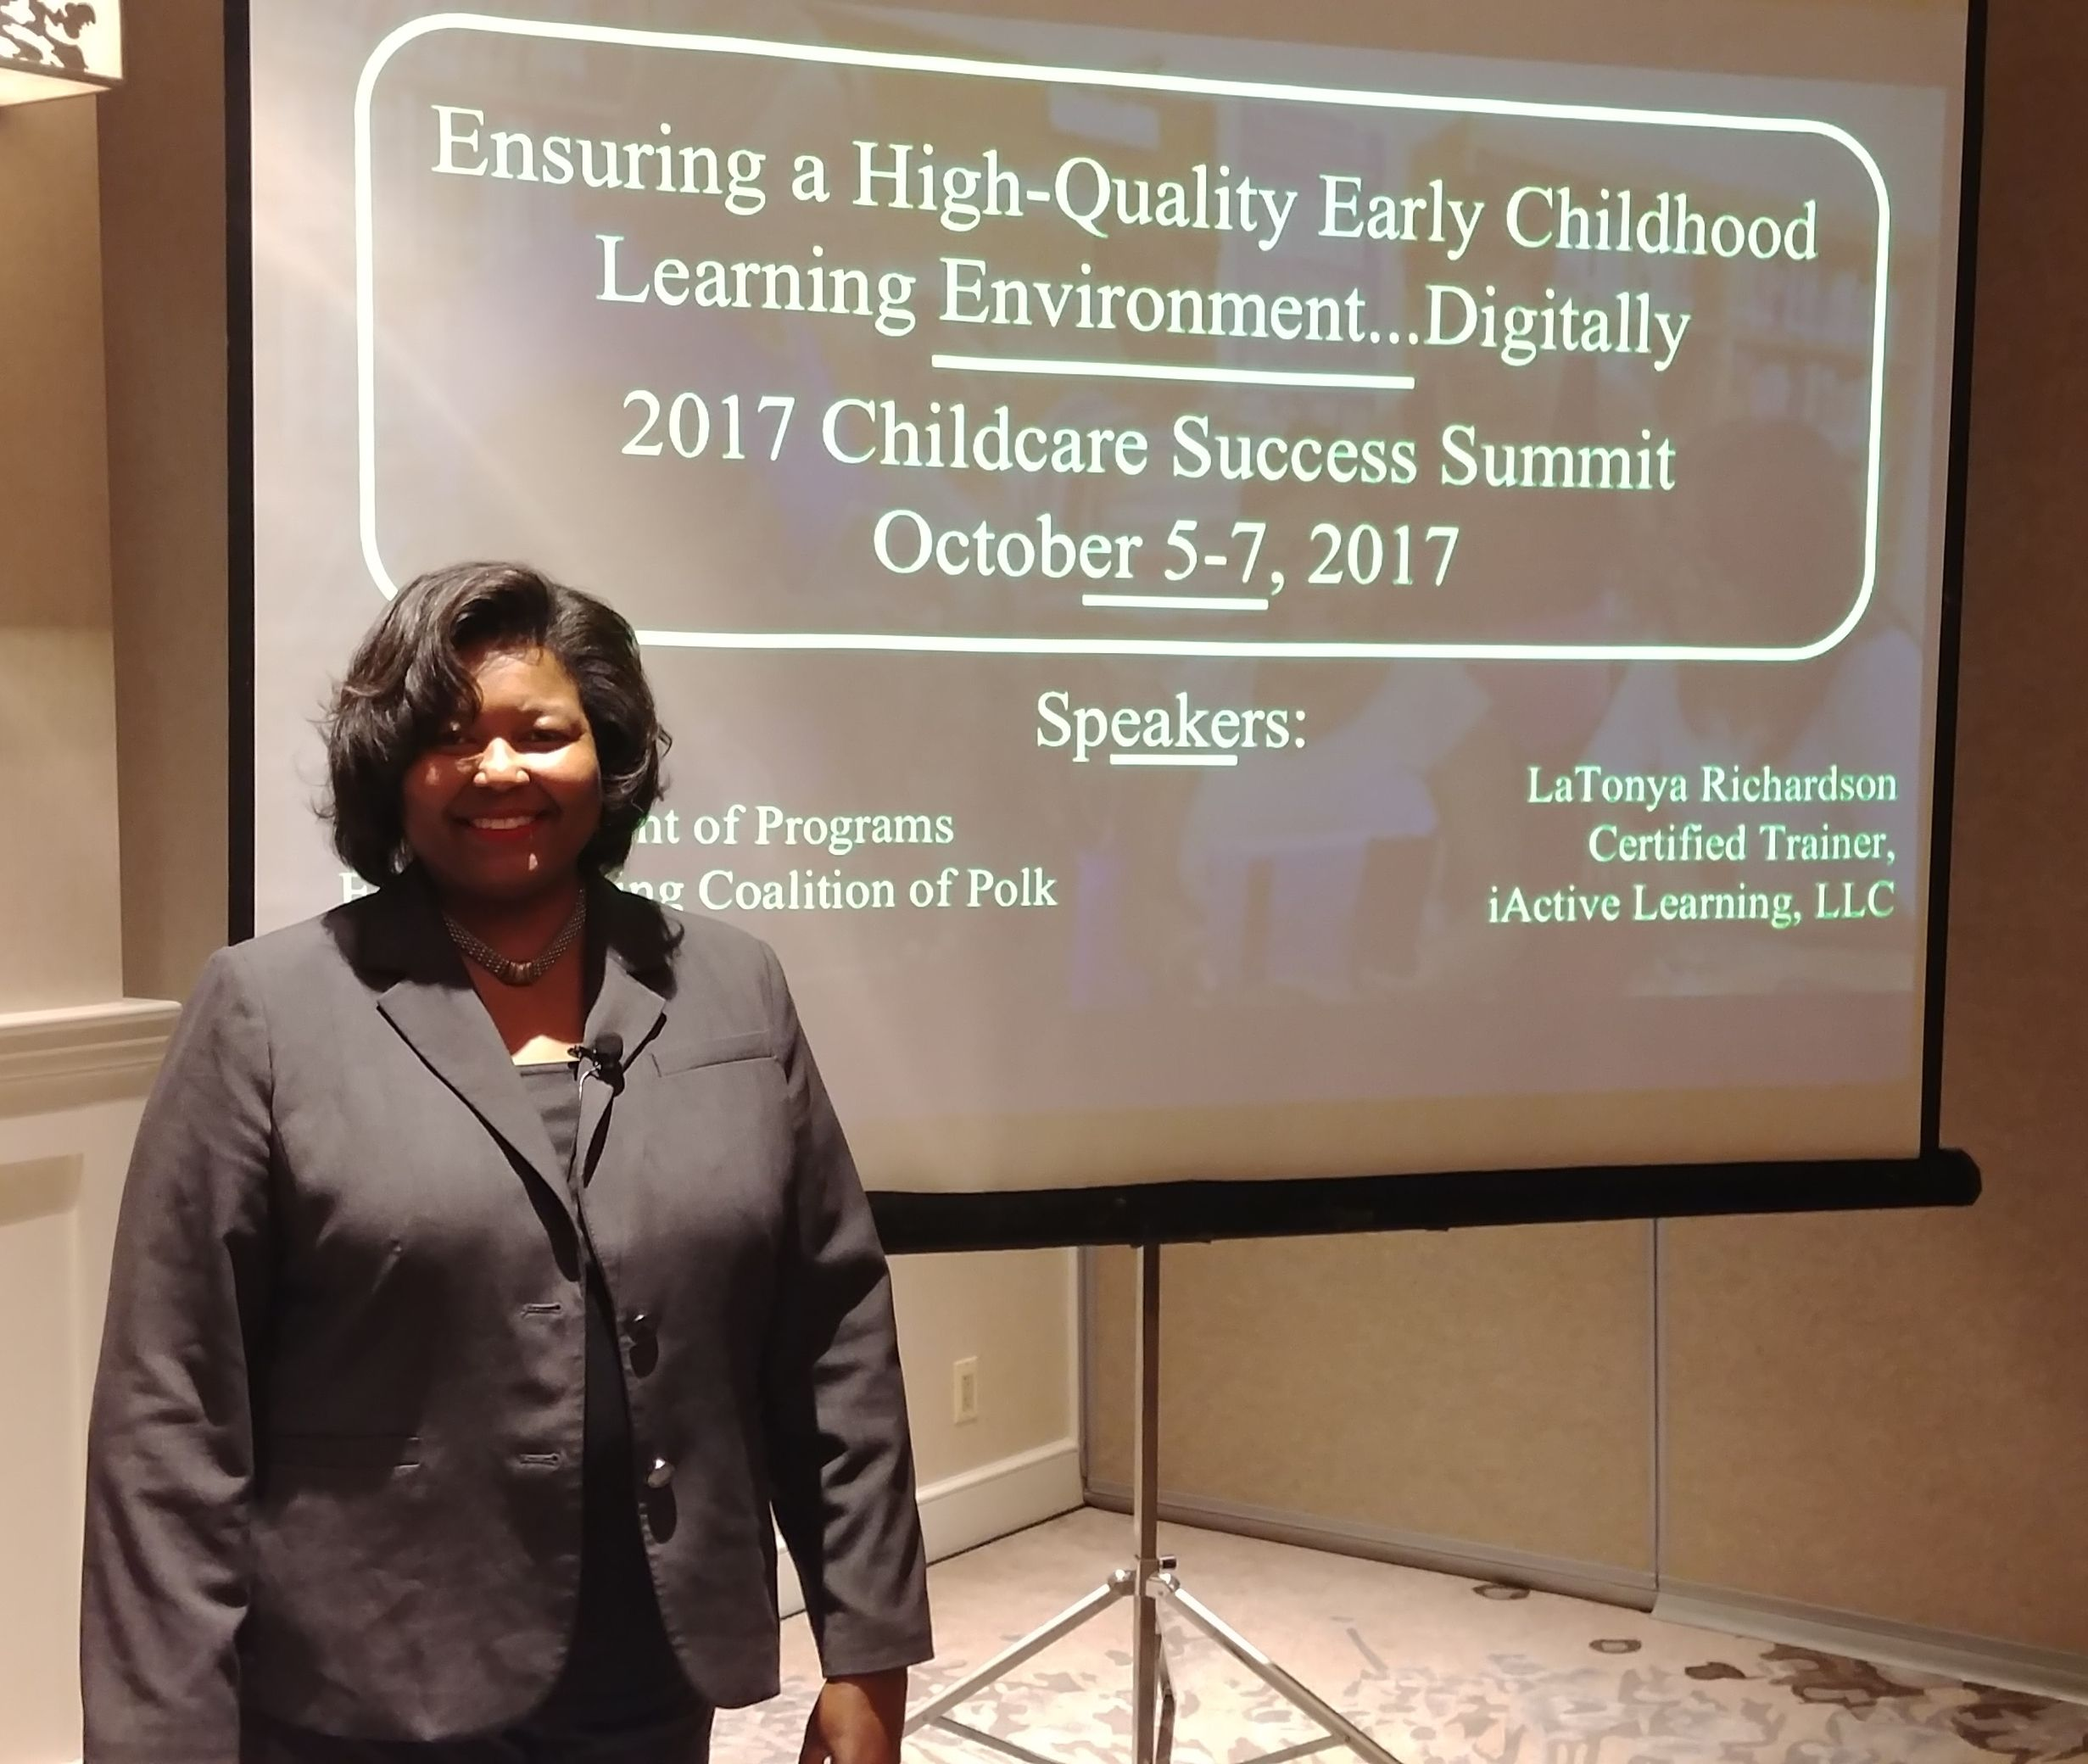 We Had A Great Time At The Child Care Success Summit In Chicago Last Week Thank You To Everyone Who Education Conferences Childhood Education Early Childhood